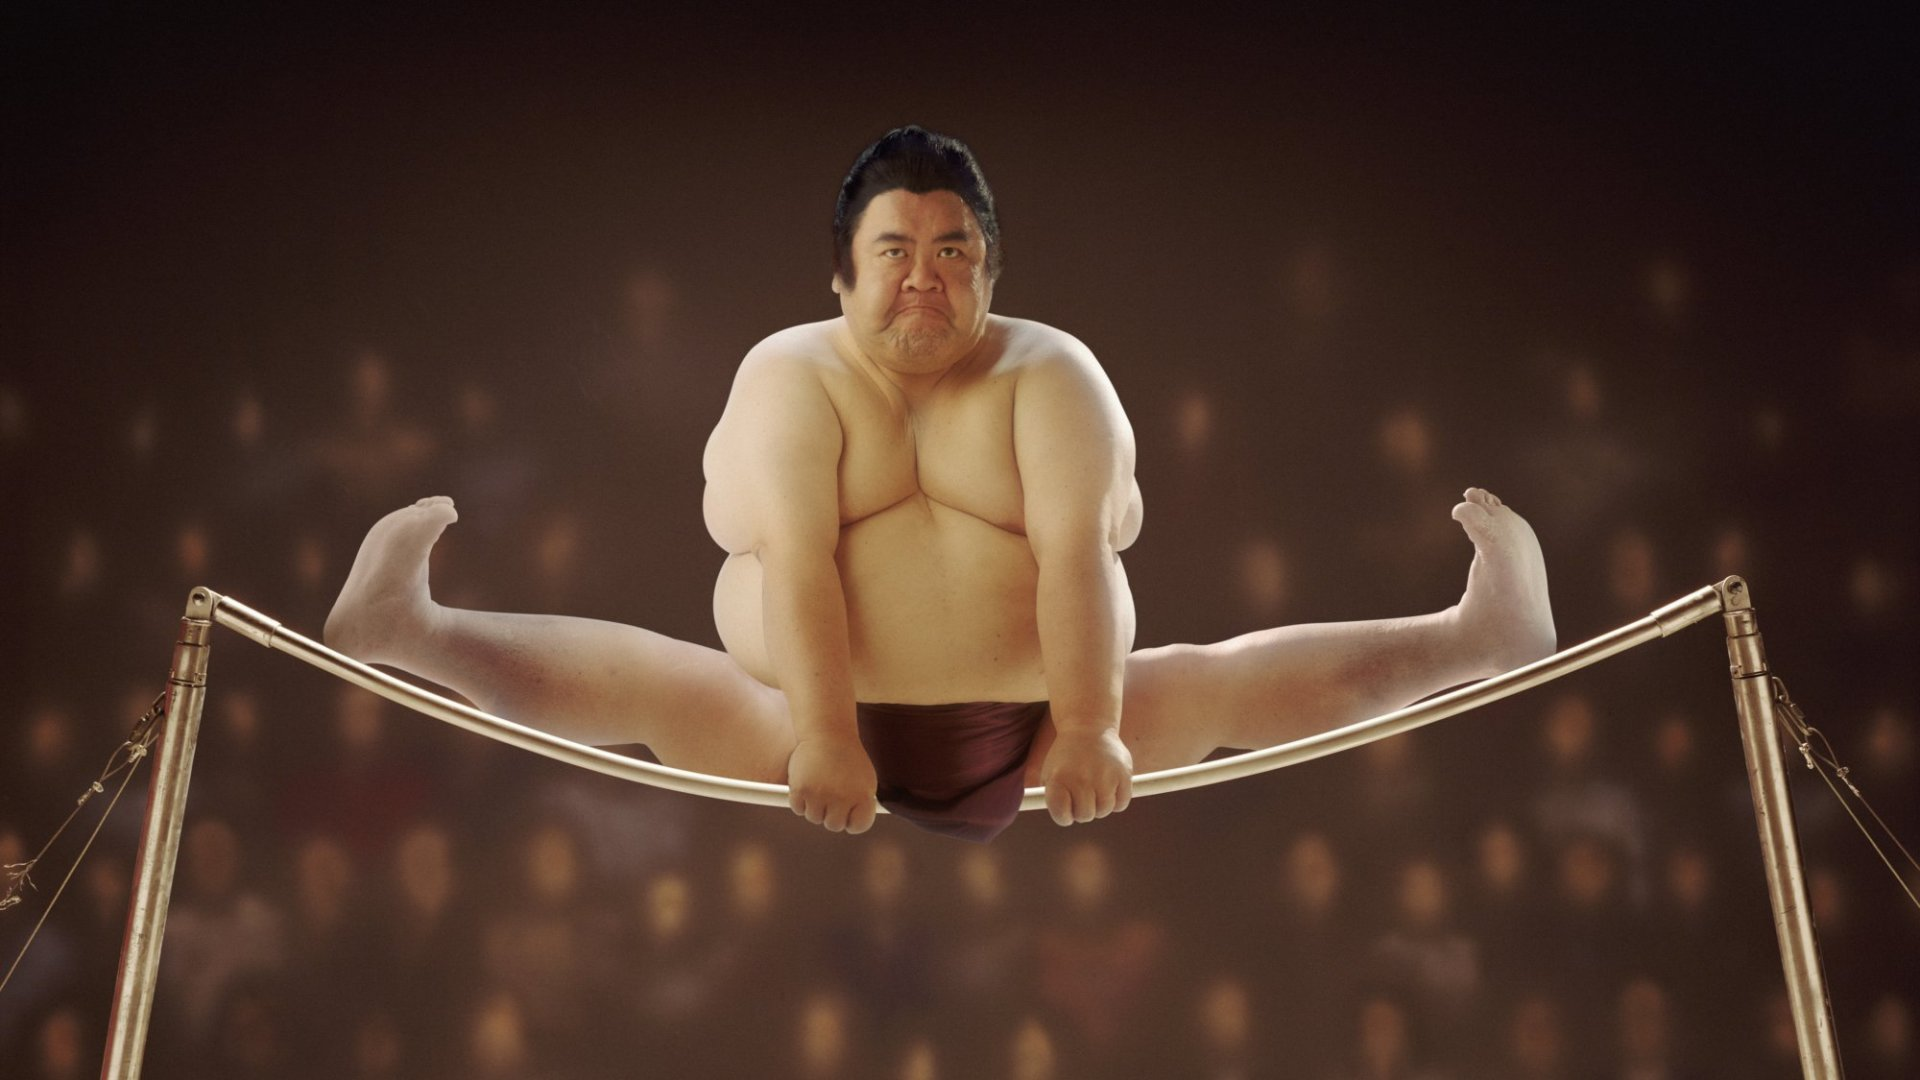 5 Lessons Learned from the Guy That Paid $1.5 Million for Sumo.com